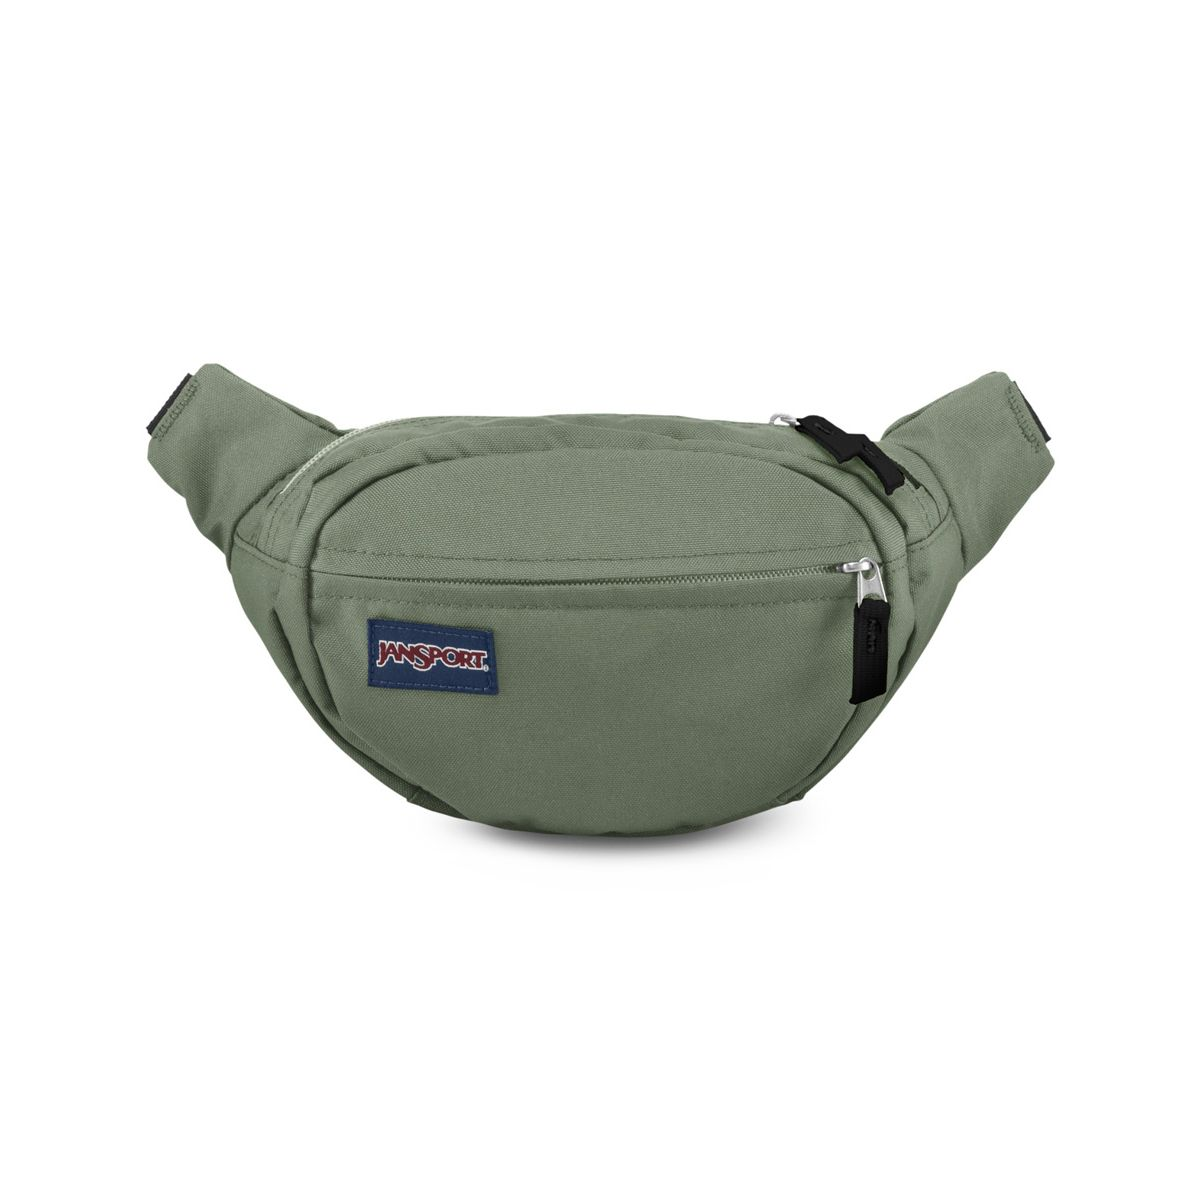 JanSport Fifth Ave Fanny Pack in Muted Green